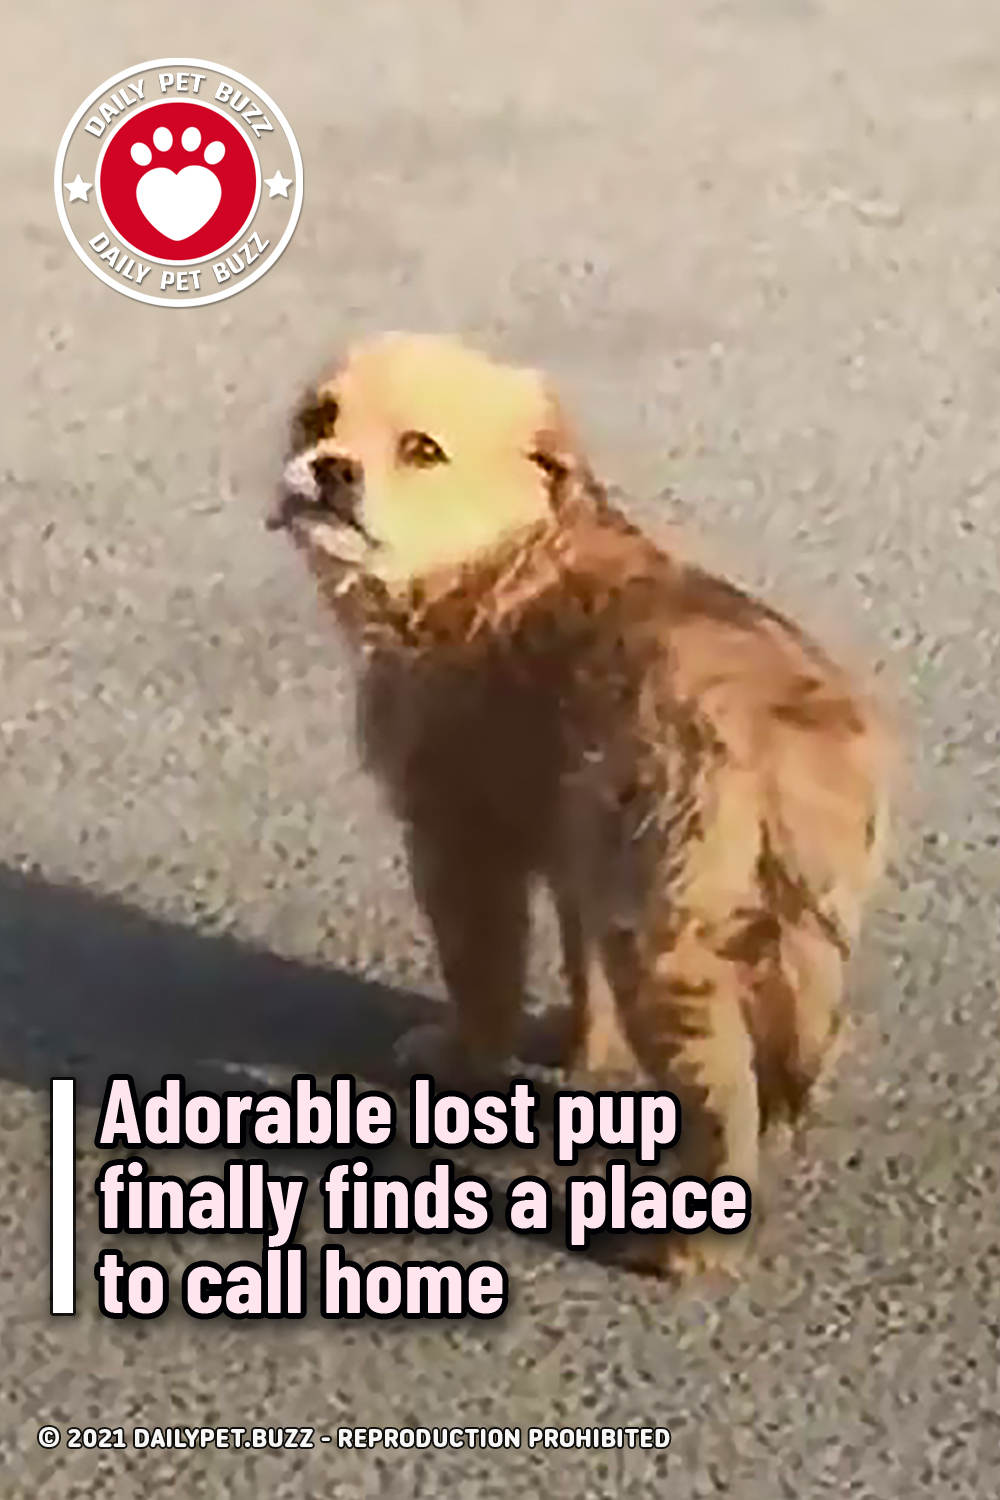 Adorable lost pup finally finds a place to call home